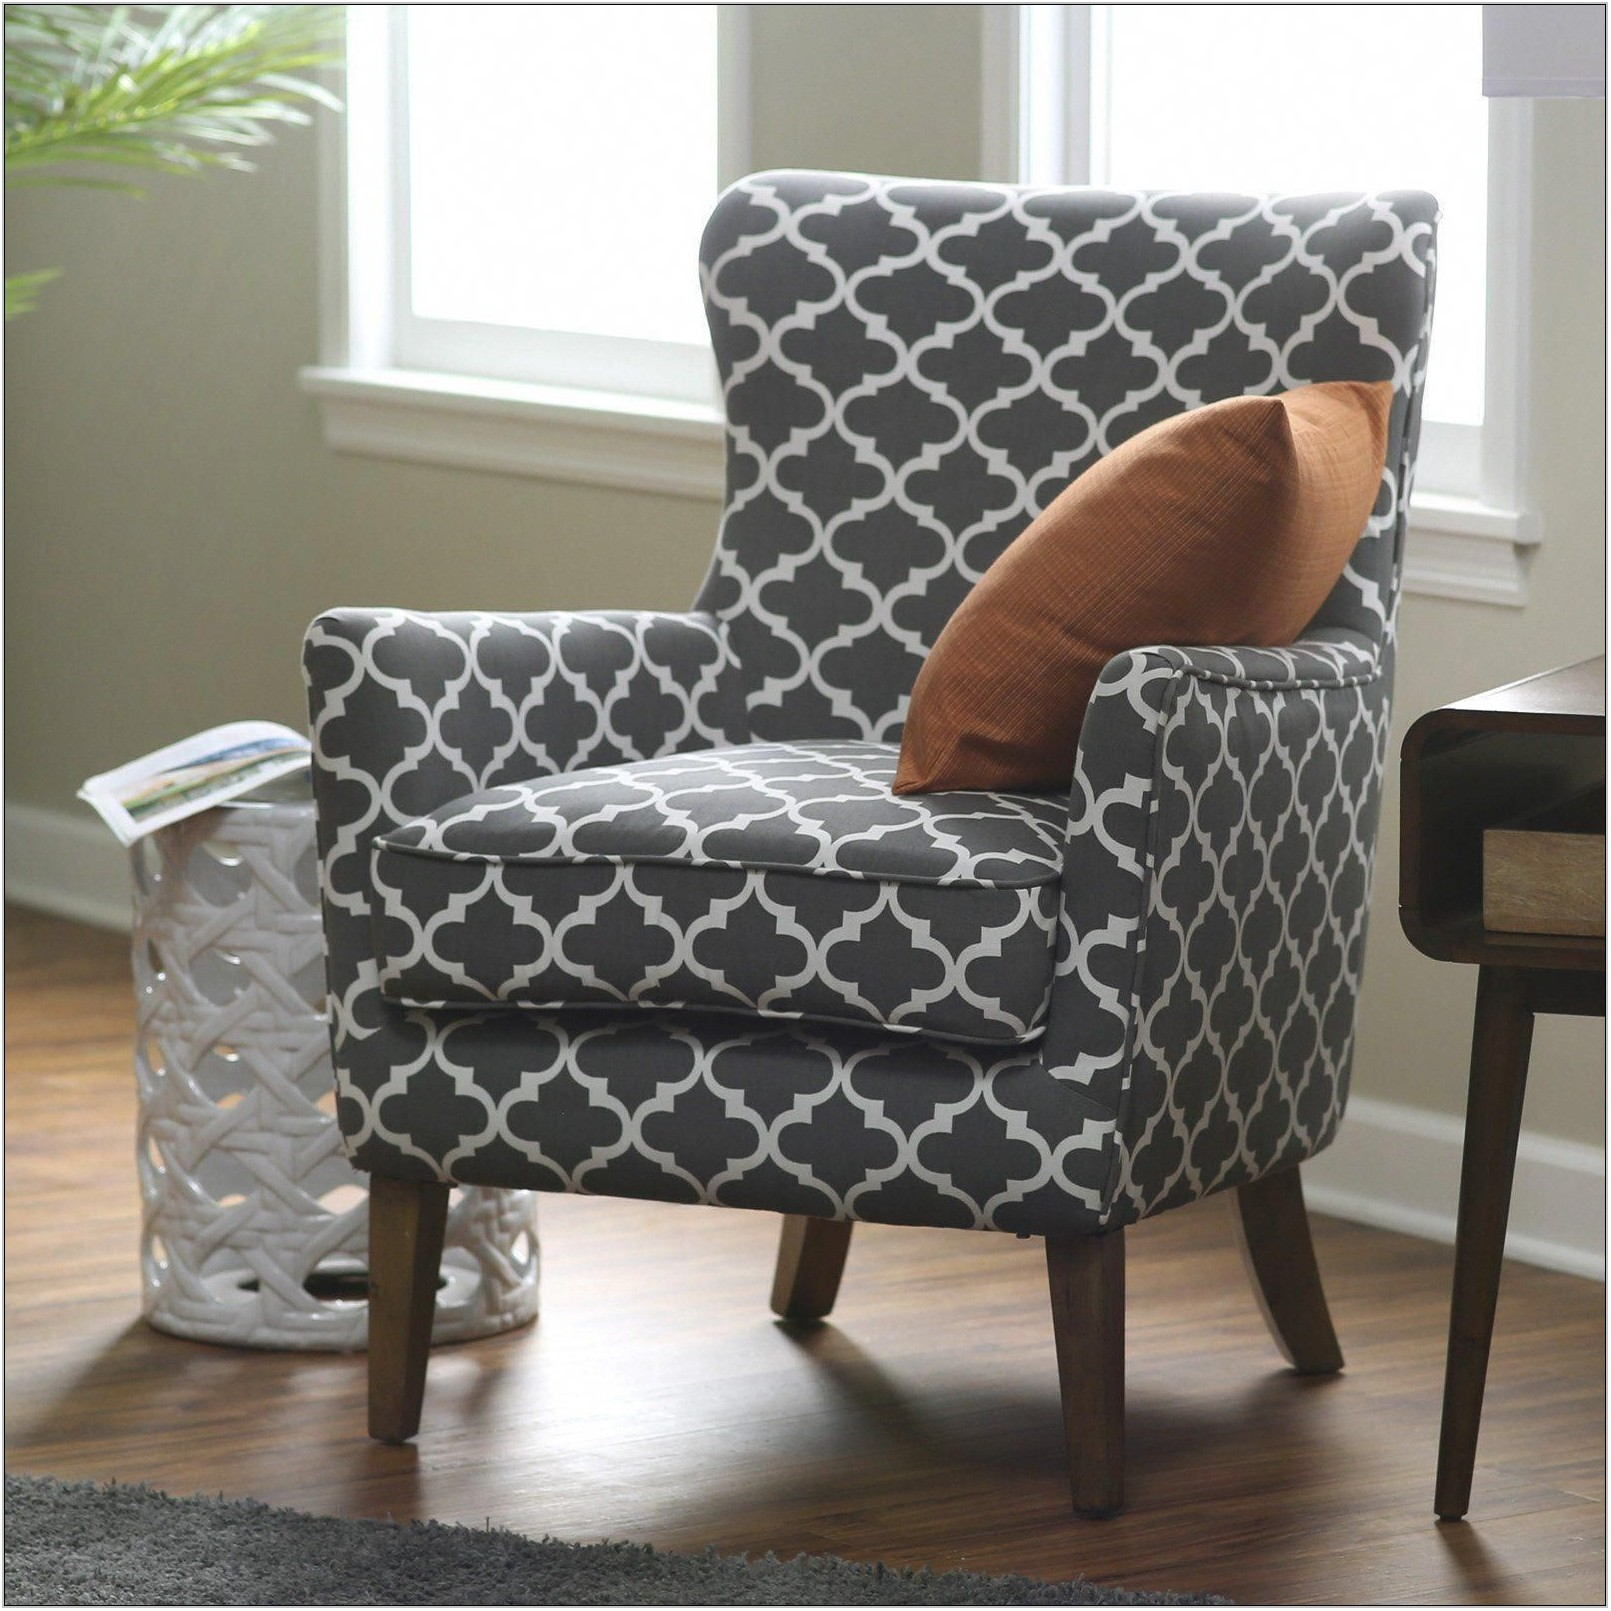 Living Room Chairs With Casters